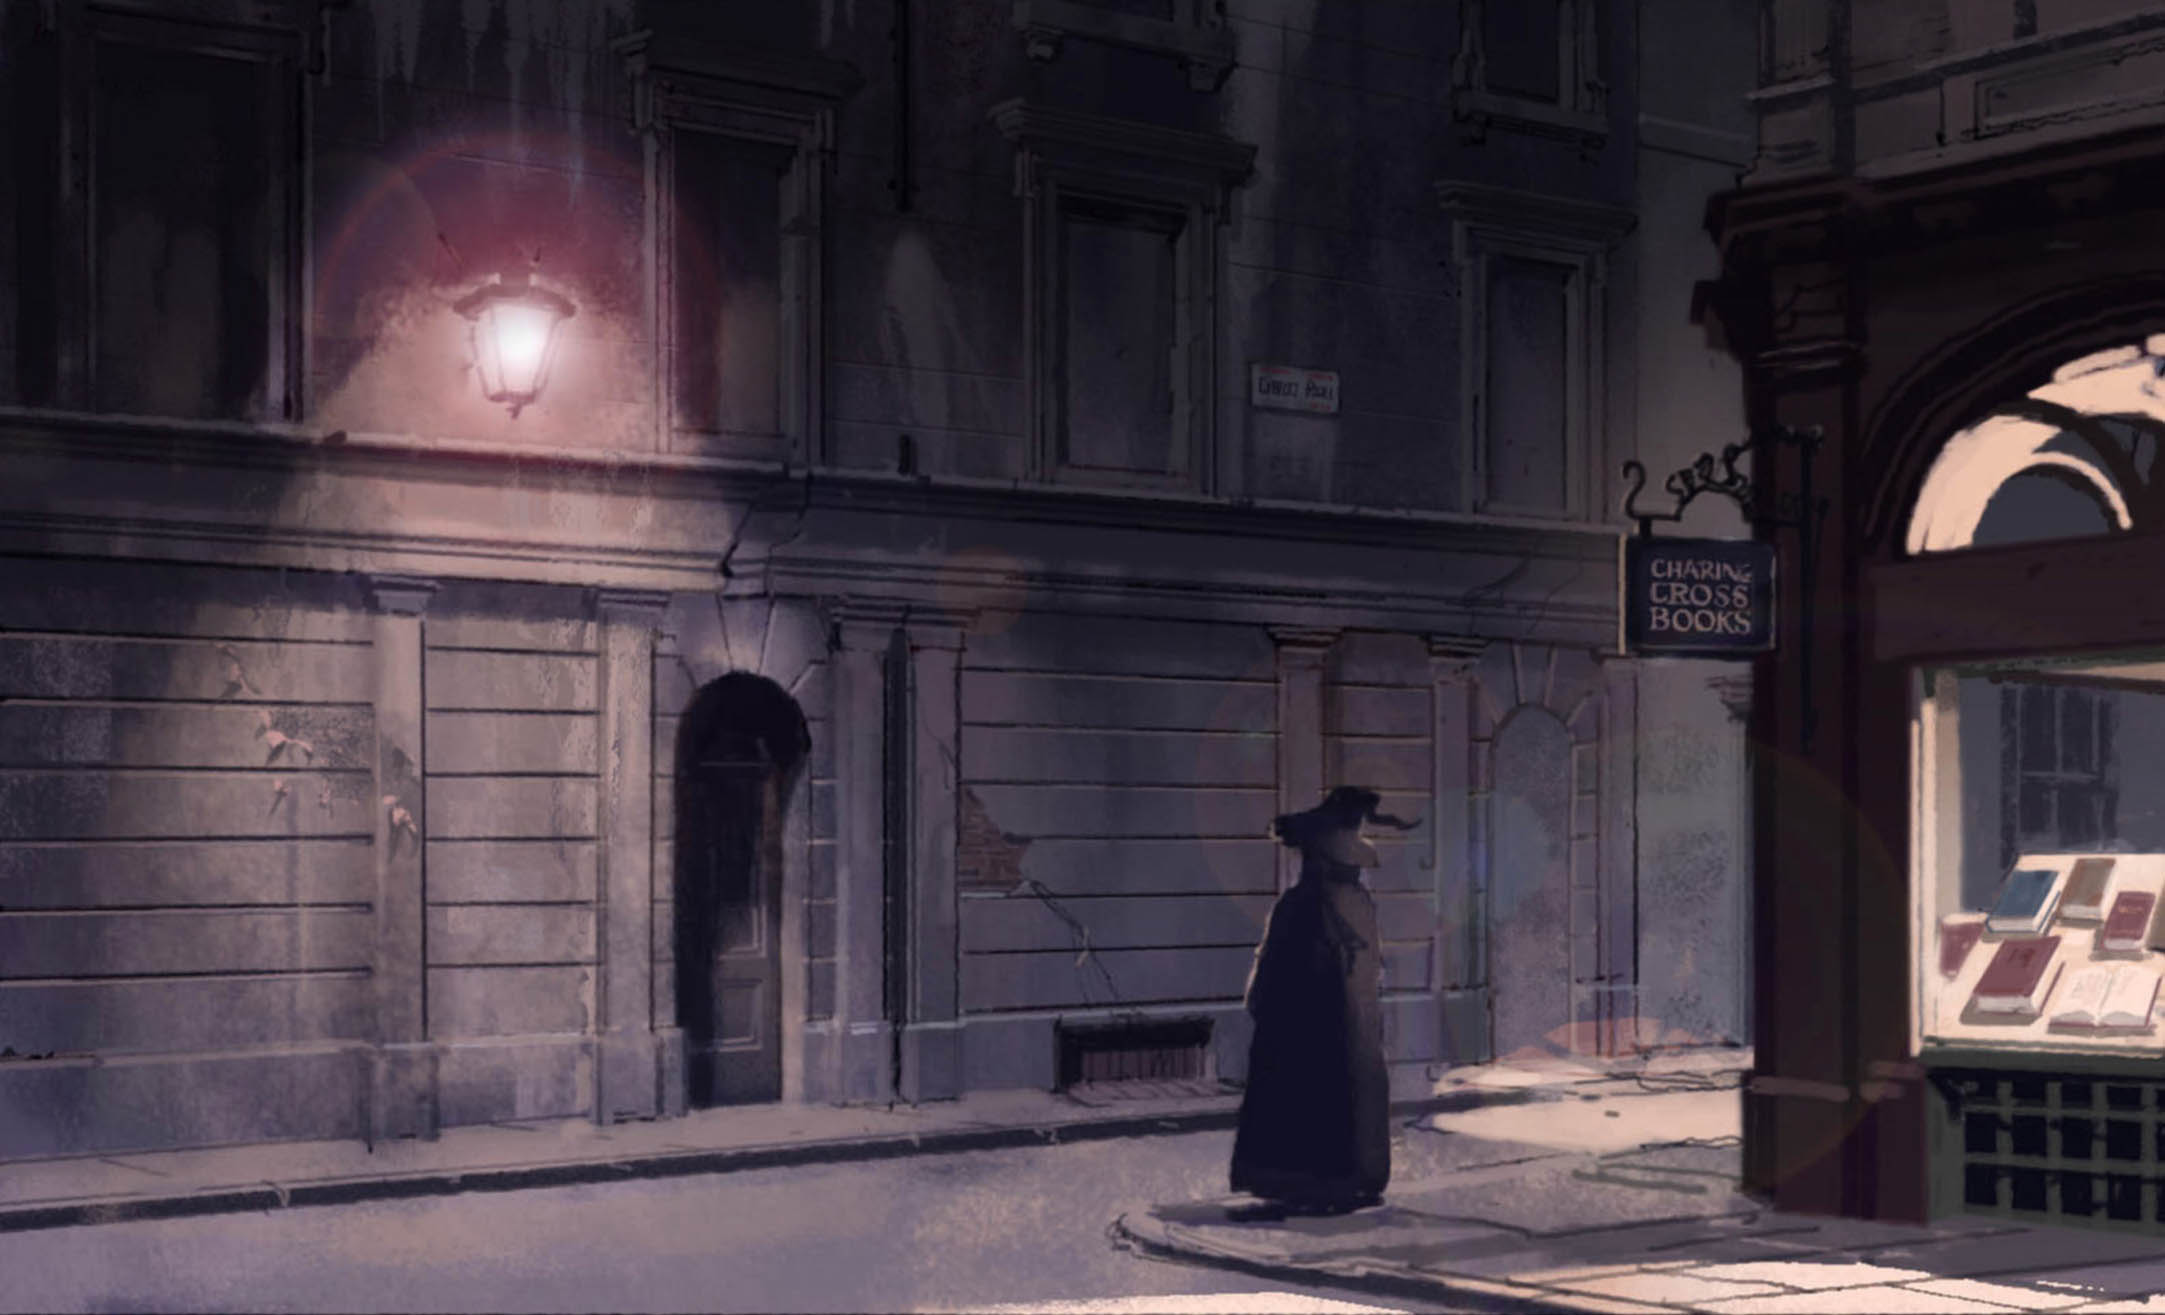 Concept illustration of the Leaky Cauldron entrance